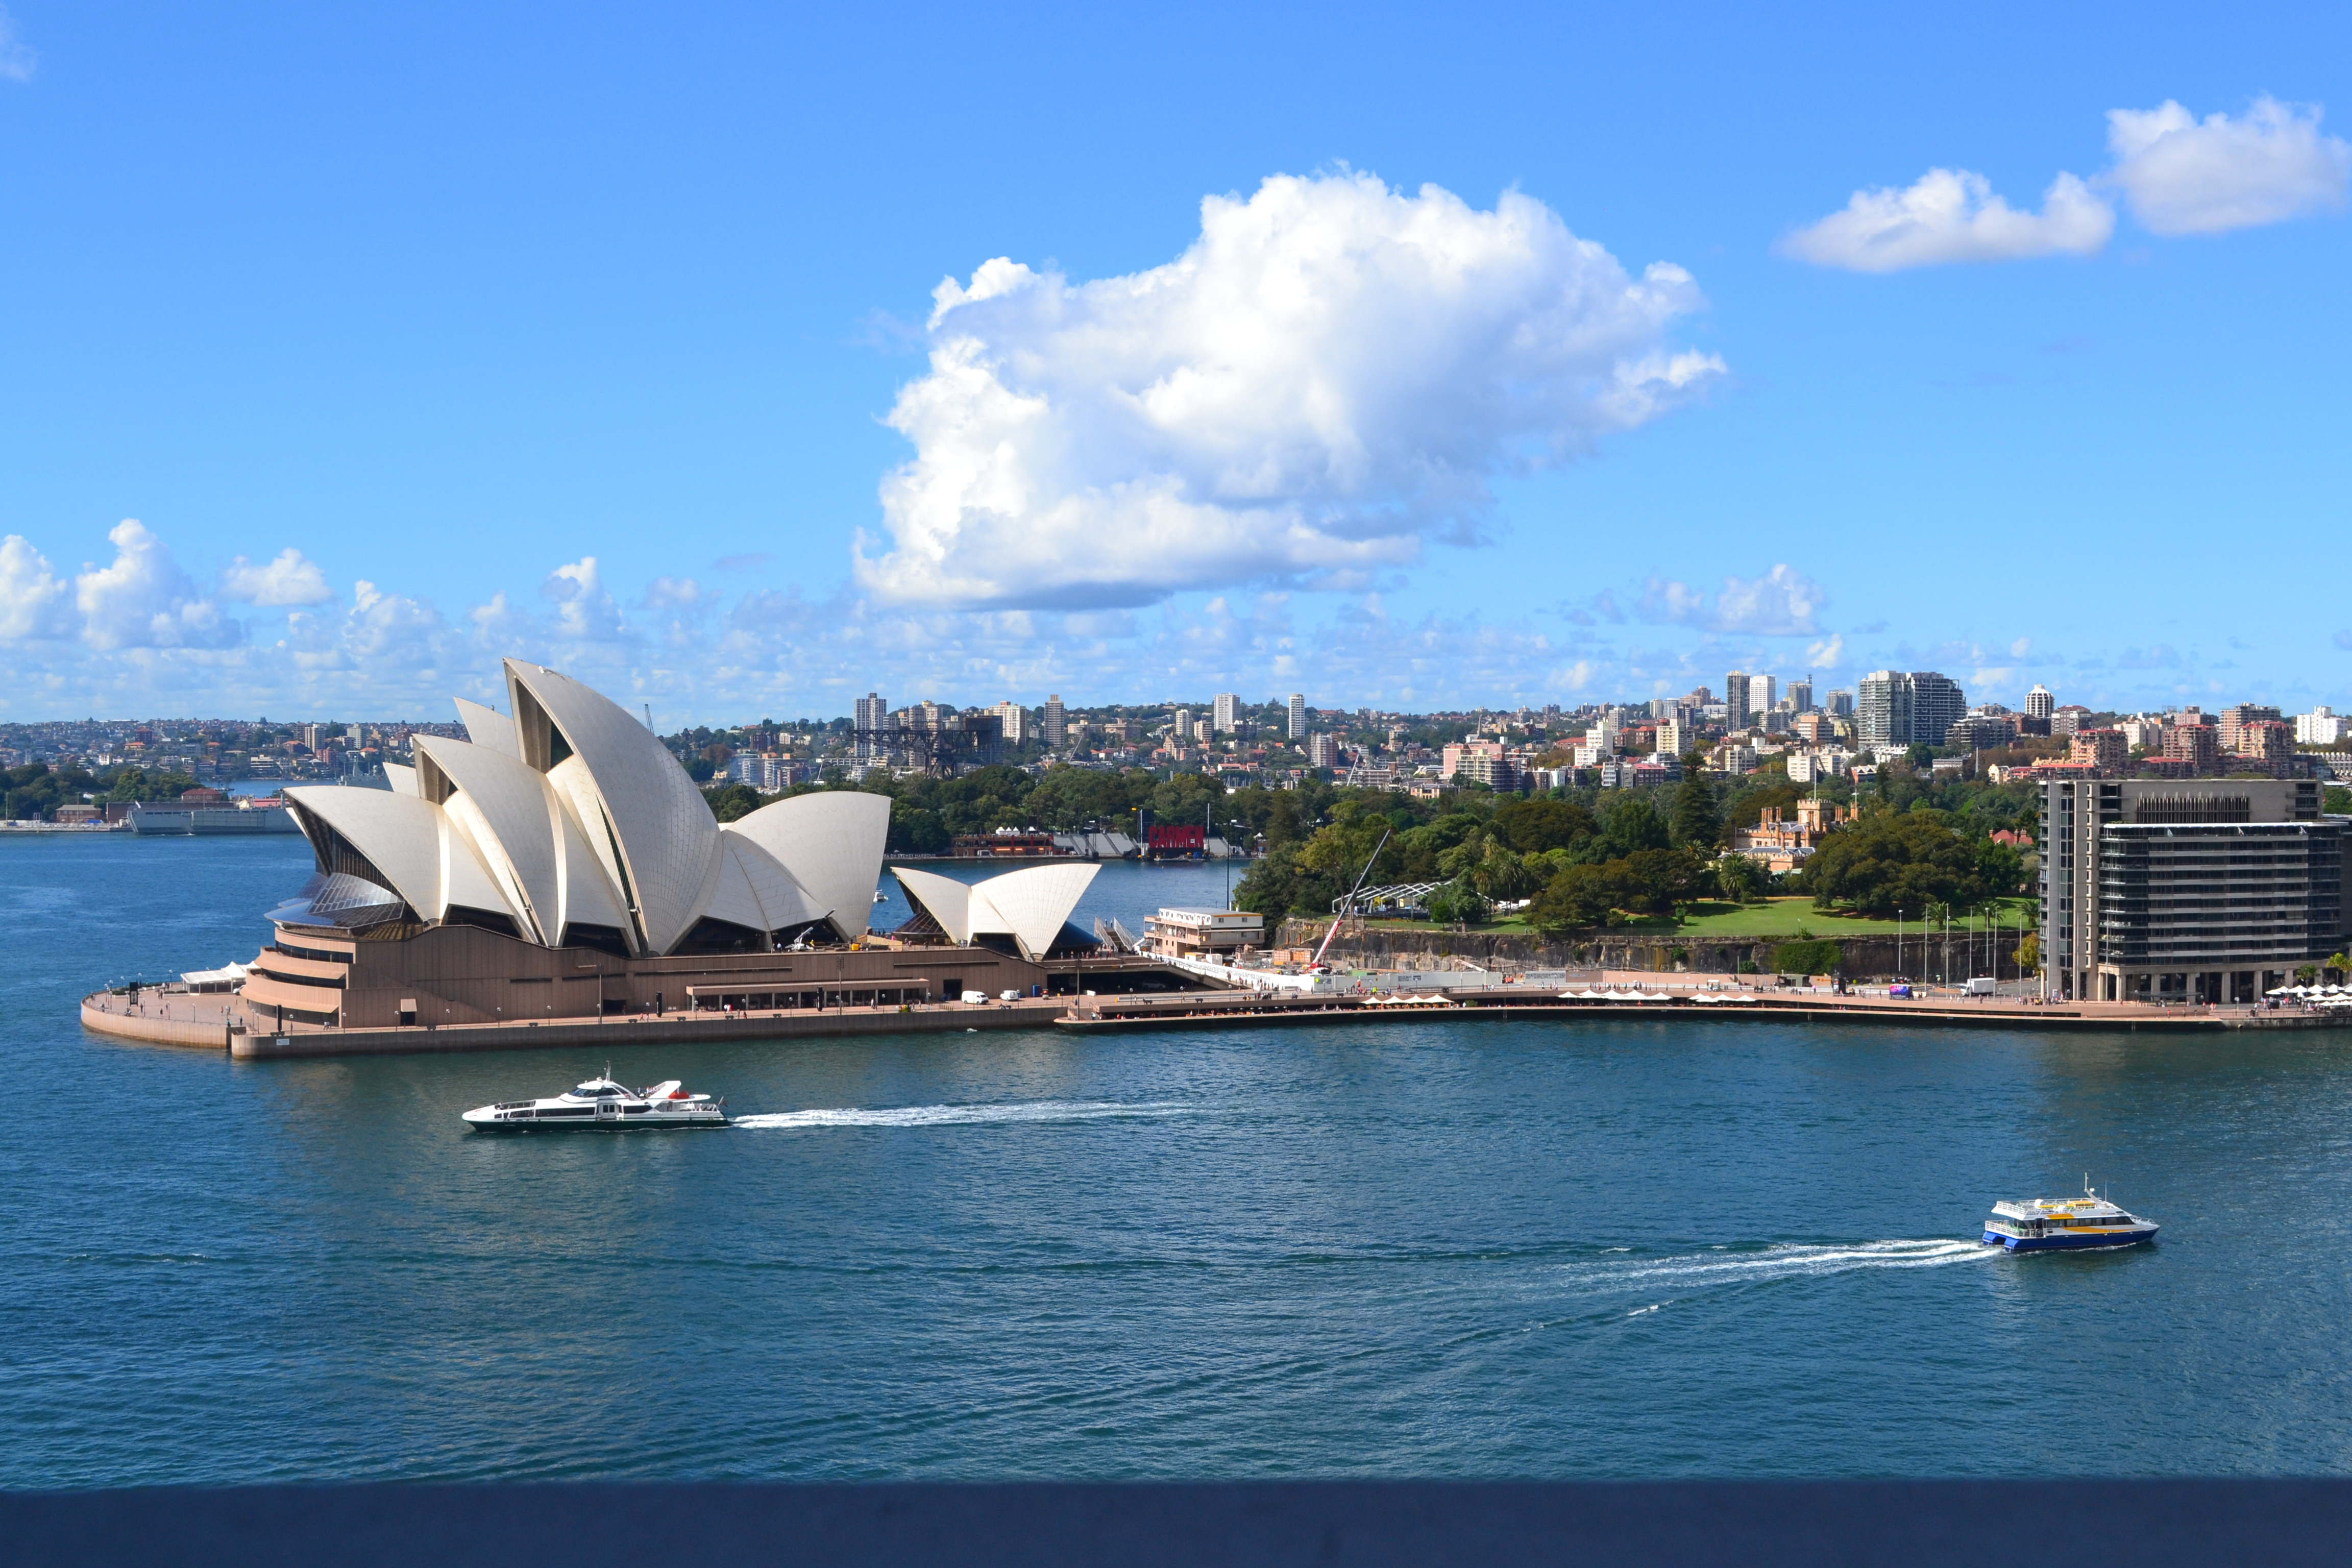 aus-sydney-opera-house-and-water